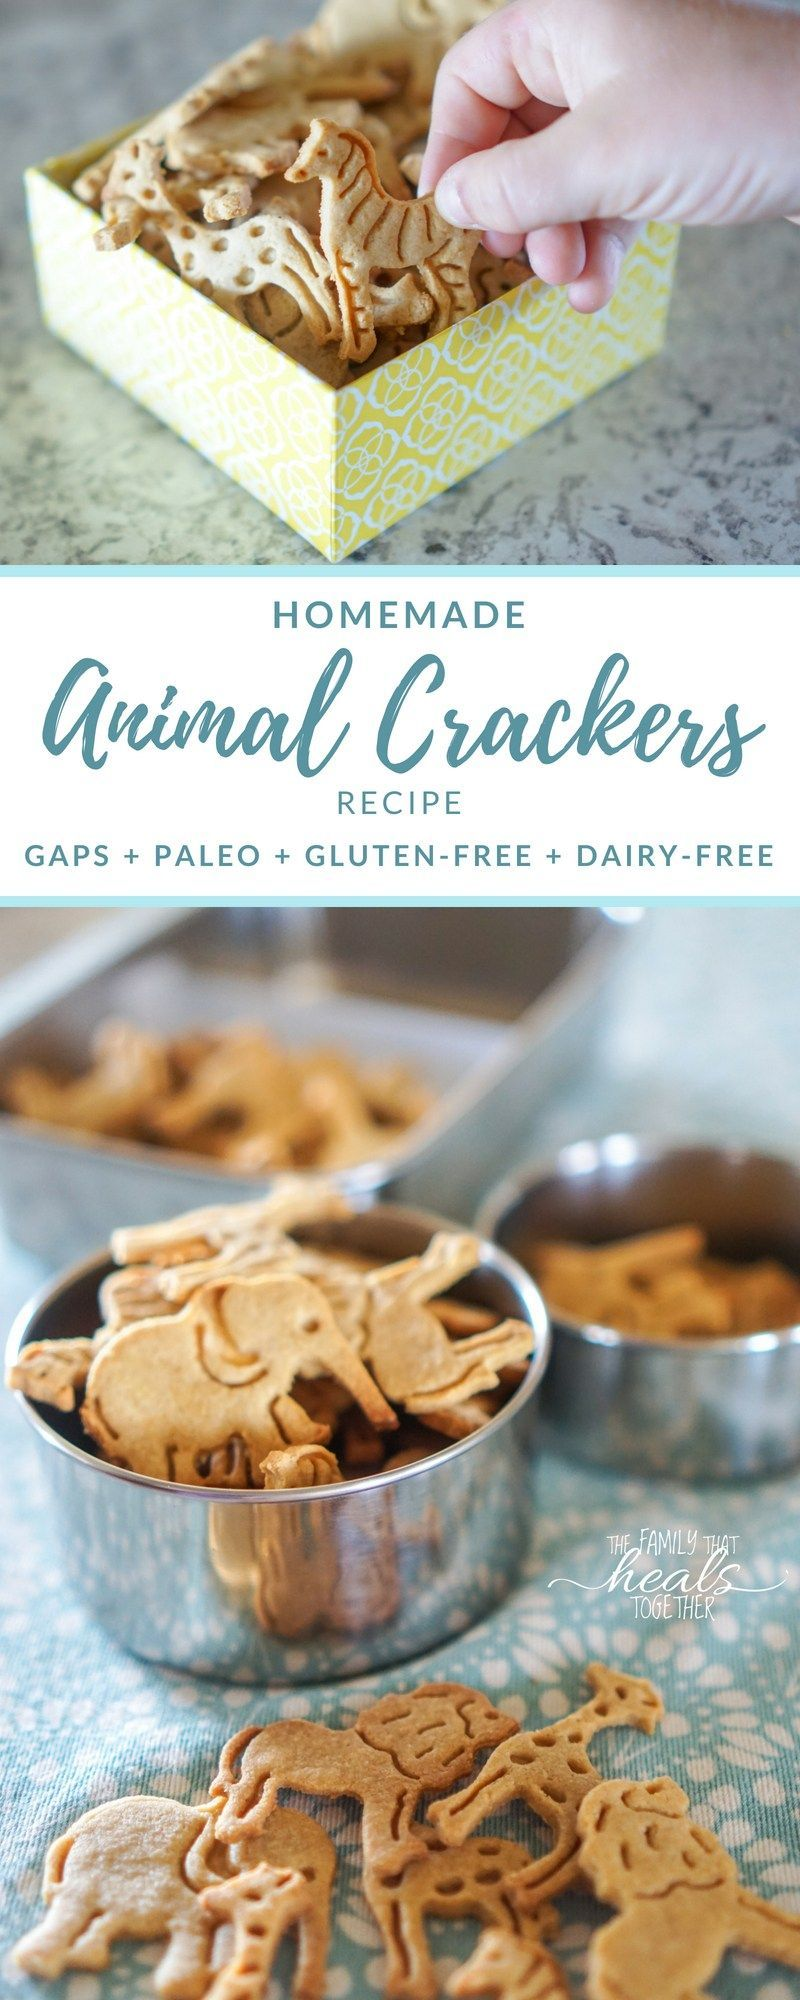 and Paleo Diets Animal Cracker Recipe for Paleo & GAPS Diet | Gluten-Free, Grain-Free, Dairy-Free, and Low Carb | The Family That Heals TogetherAnimal Cracker Recipe for Paleo & GAPS Diet | Gluten-Free, Grain-Free, Dairy-Free, and Low Carb | The Family That Heals Together